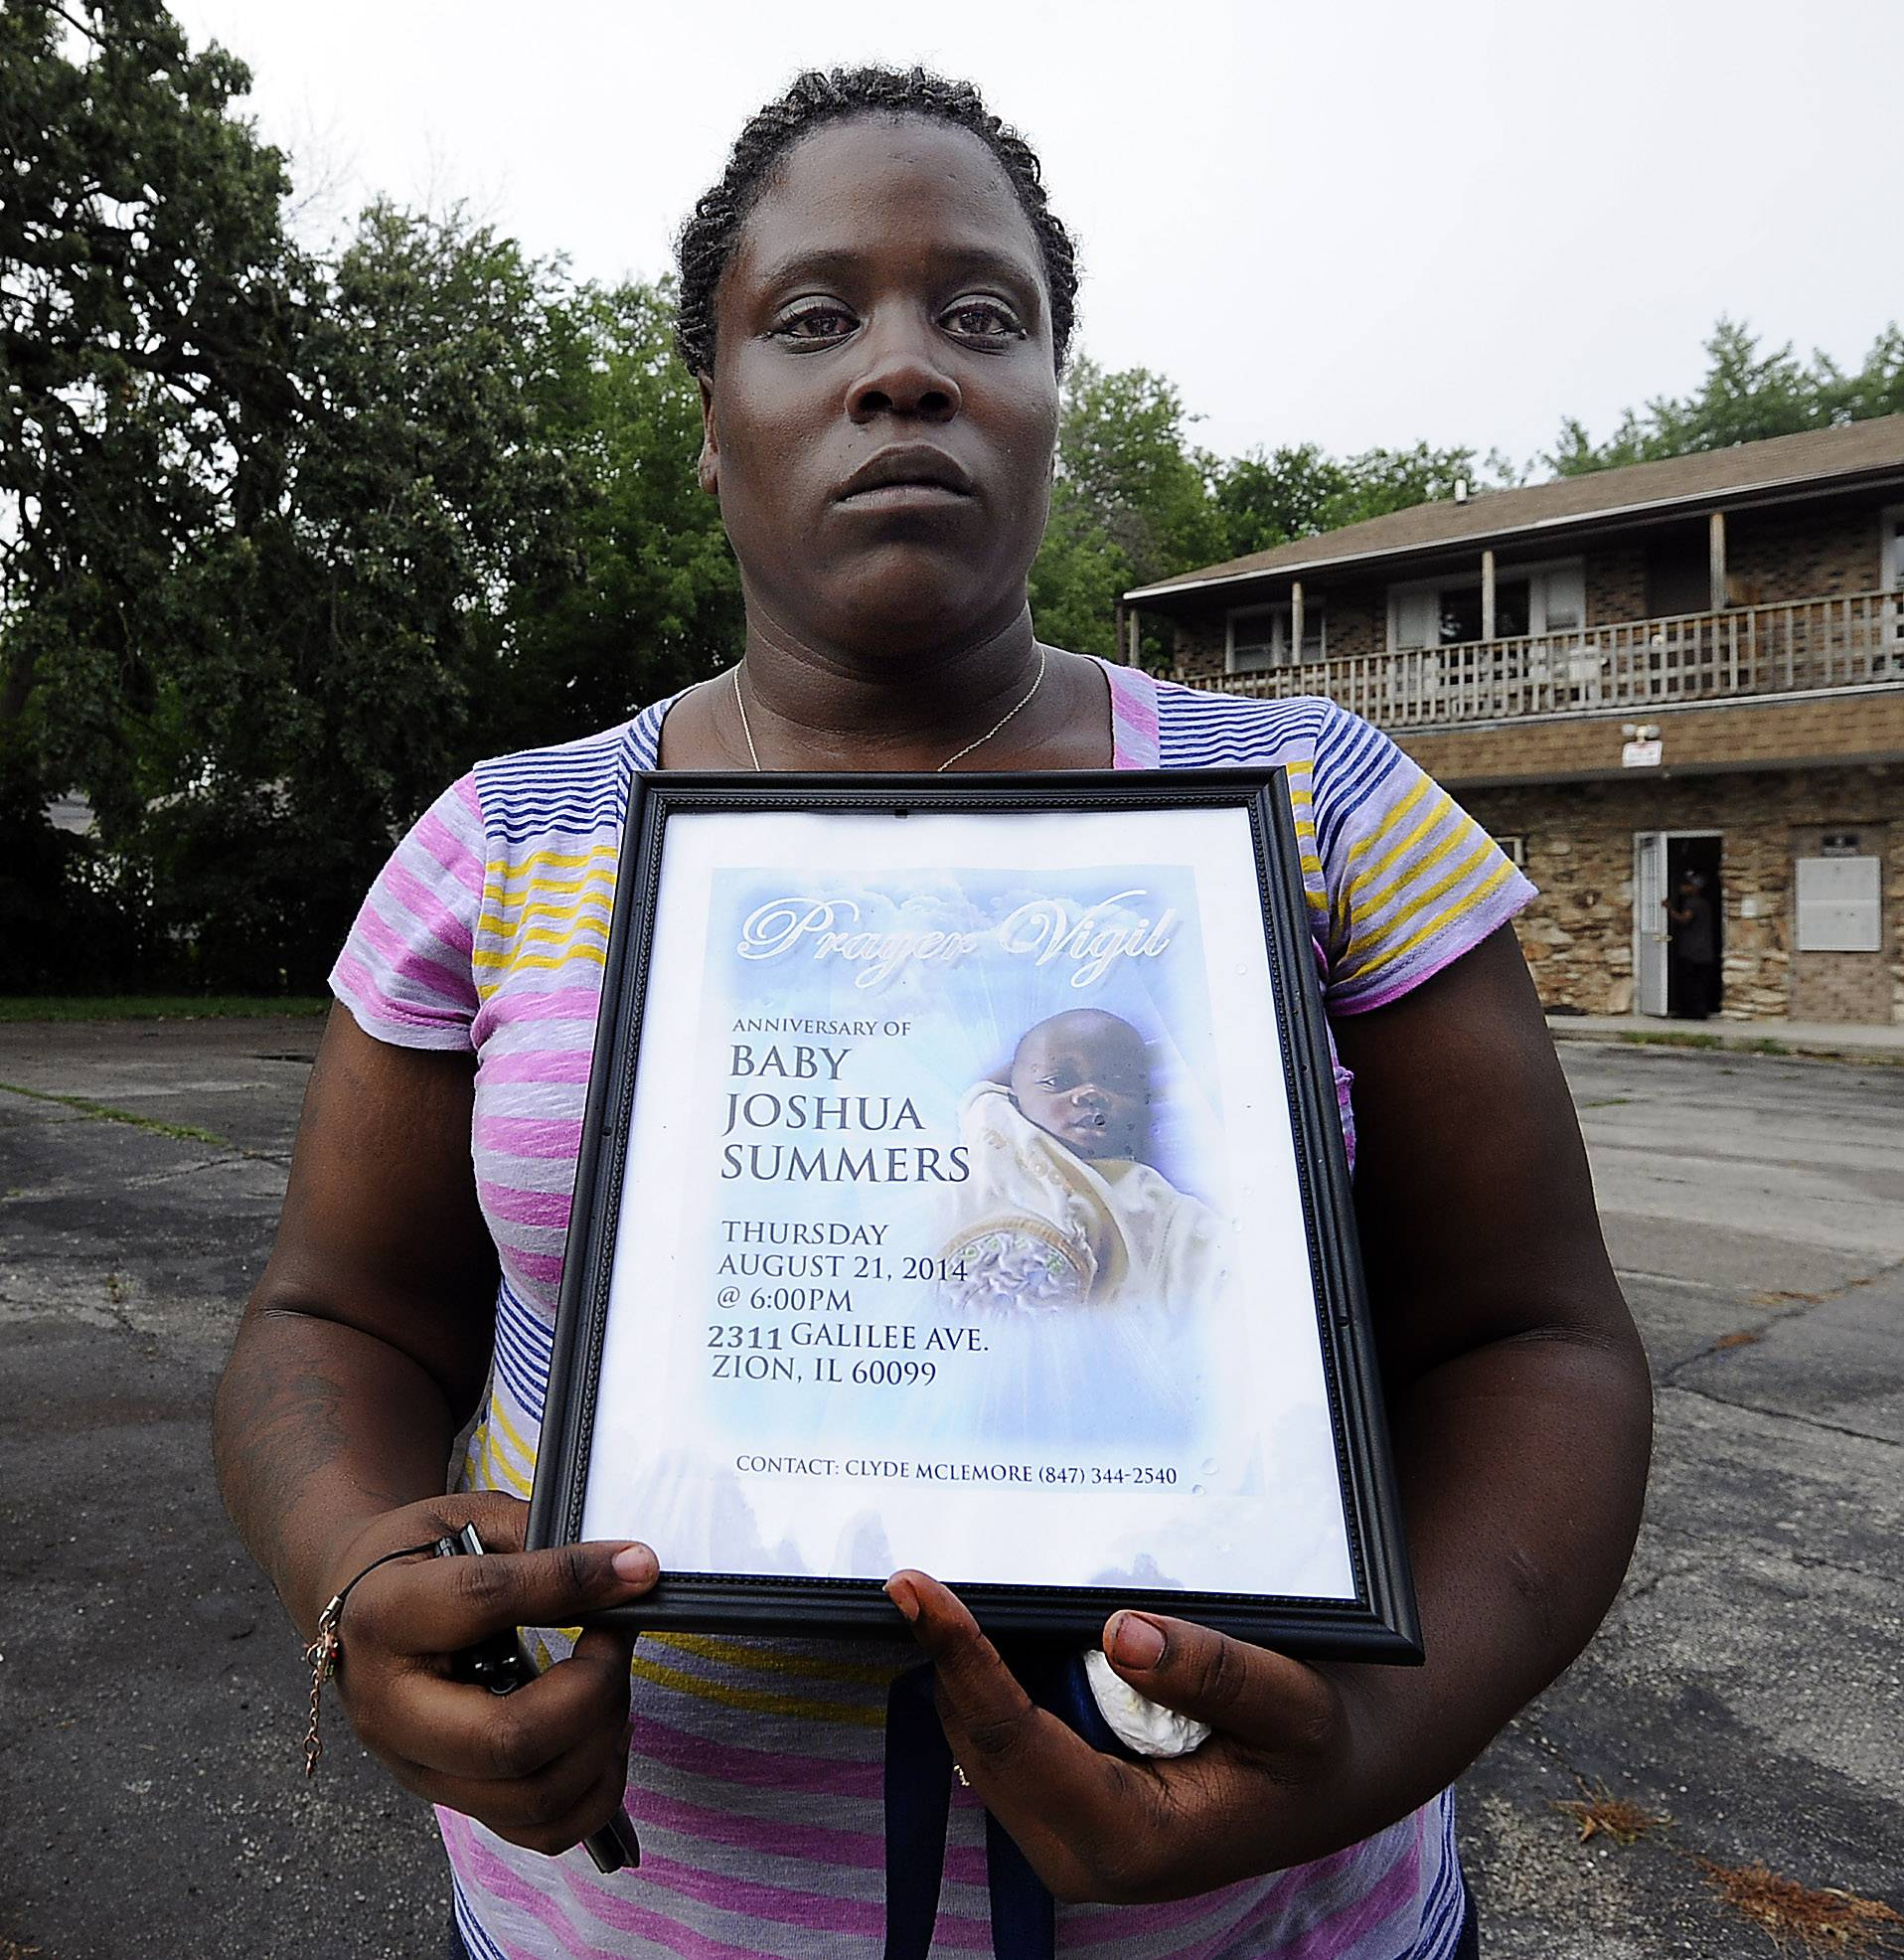 Kisha Summeries, mother of baby Joshua. holds a picture marking the anniversary of her son's death in Zion at a prayer service held in his honor Thursday.